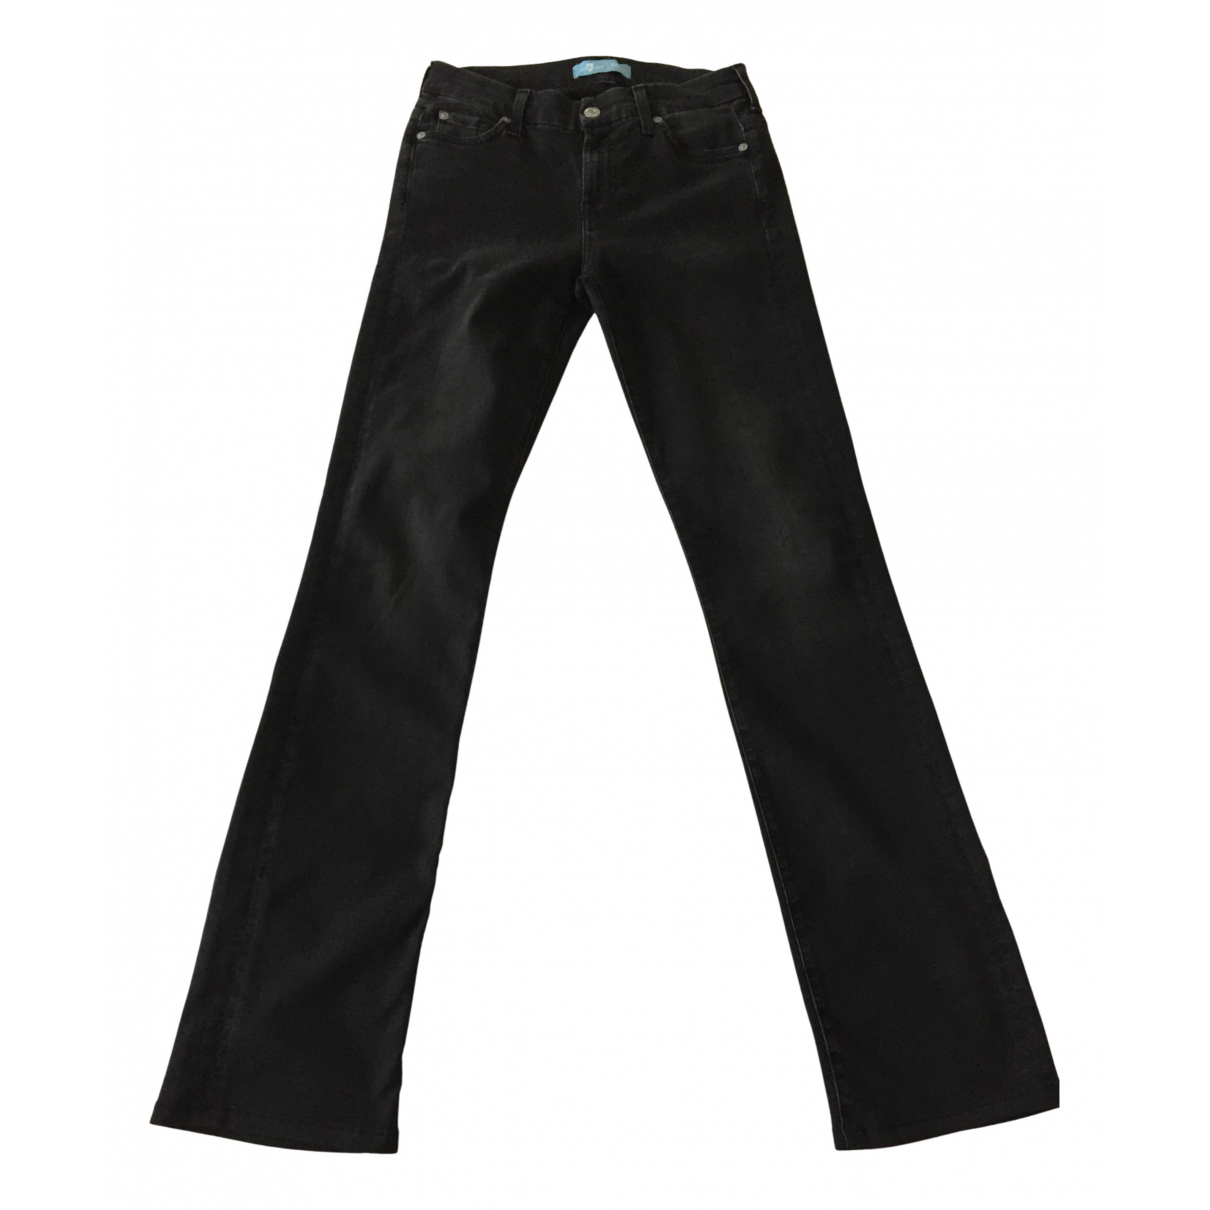 7 For All Mankind N Black Cotton - elasthane Jeans for Women 26 US